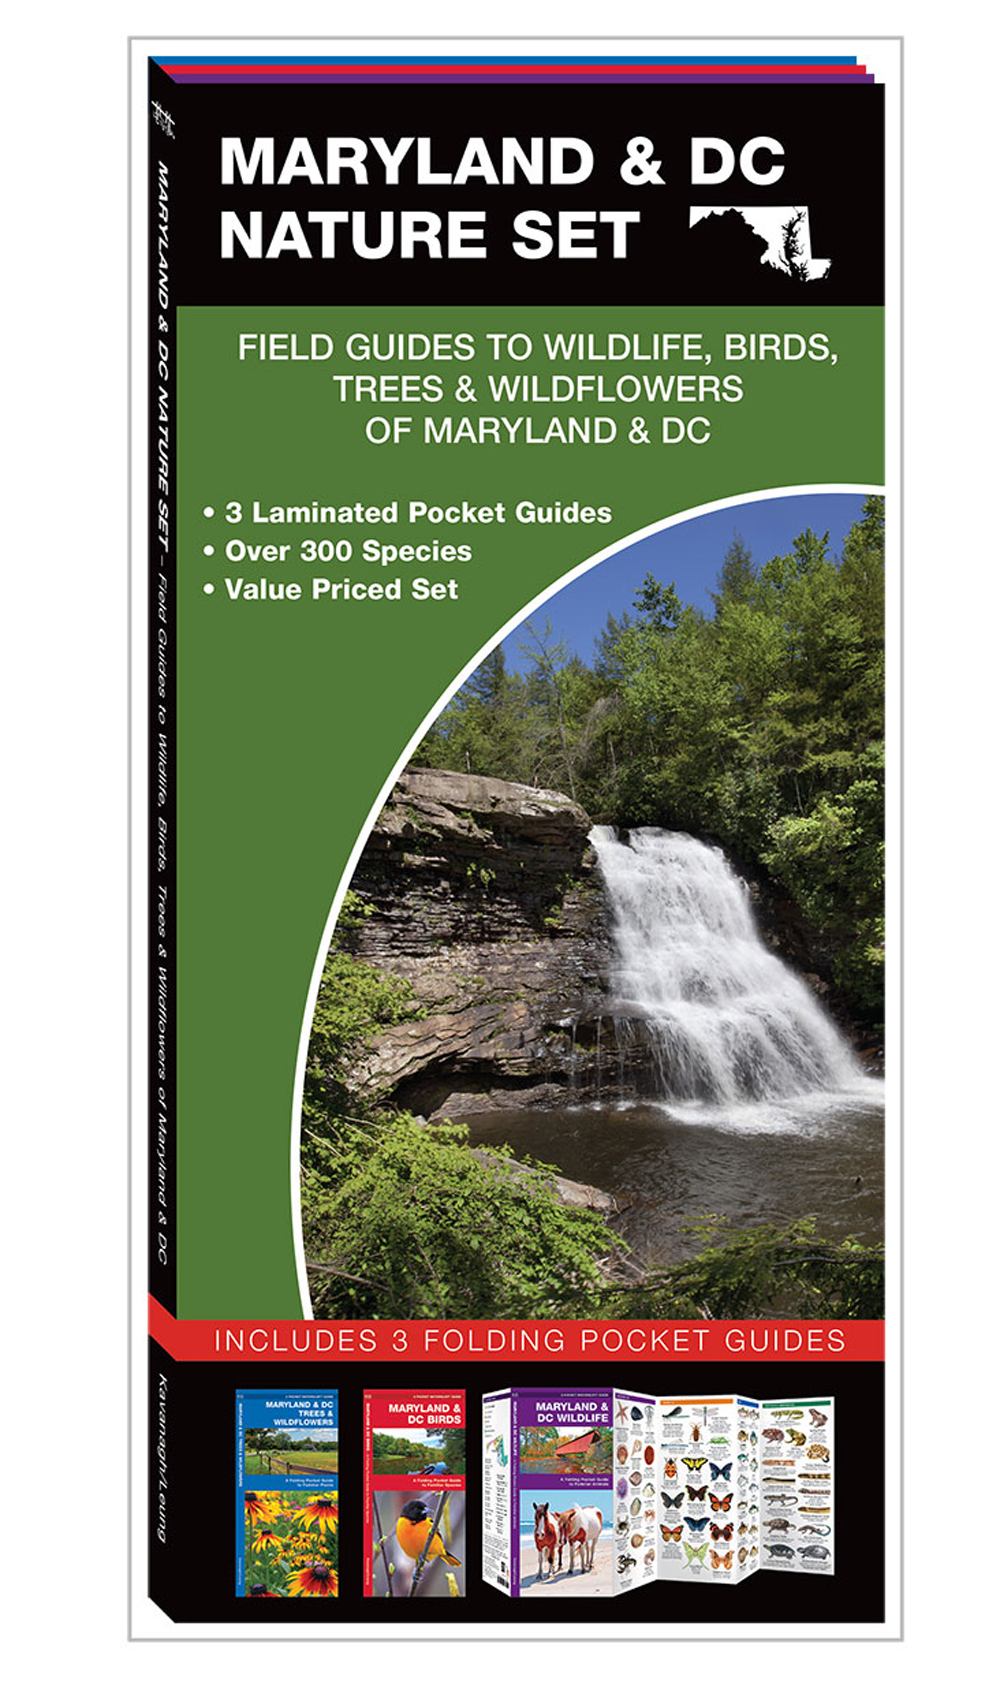 Maryland & DC Nature Set: Field Guides to Wildlife, Birds, Trees & Wildflowers (Pocket Naturalist® Guide Set)